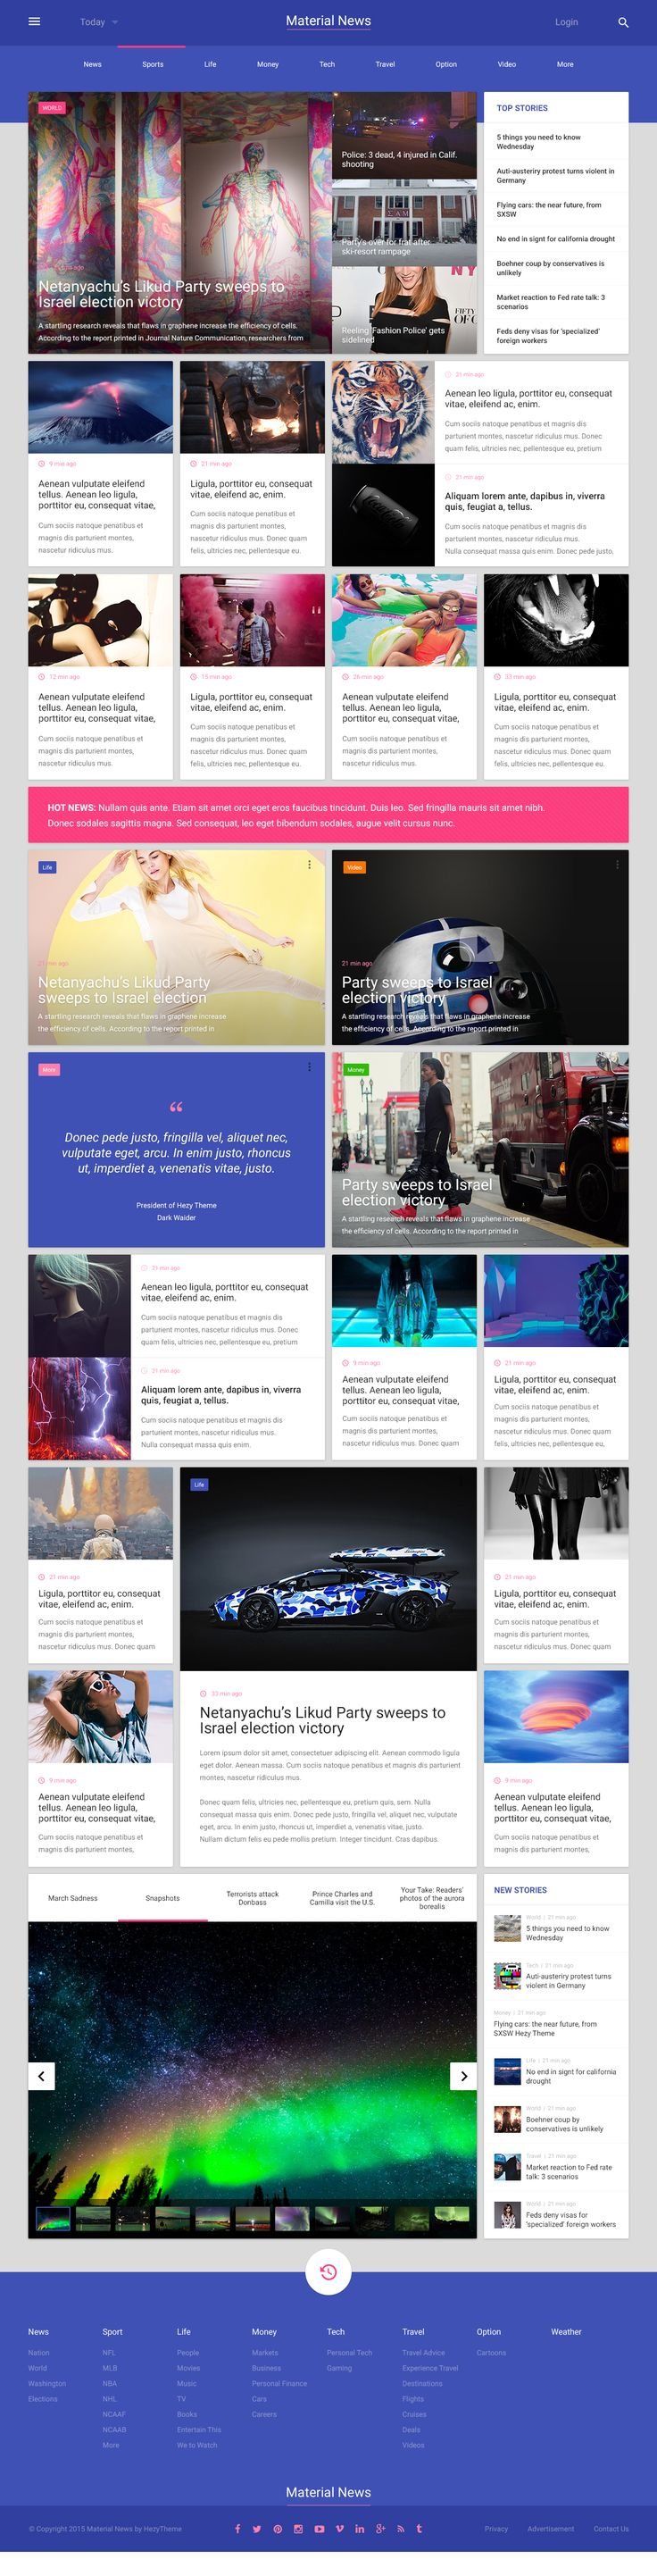 Material Design, magazine, articles, news feed, community, colors, space, fonts